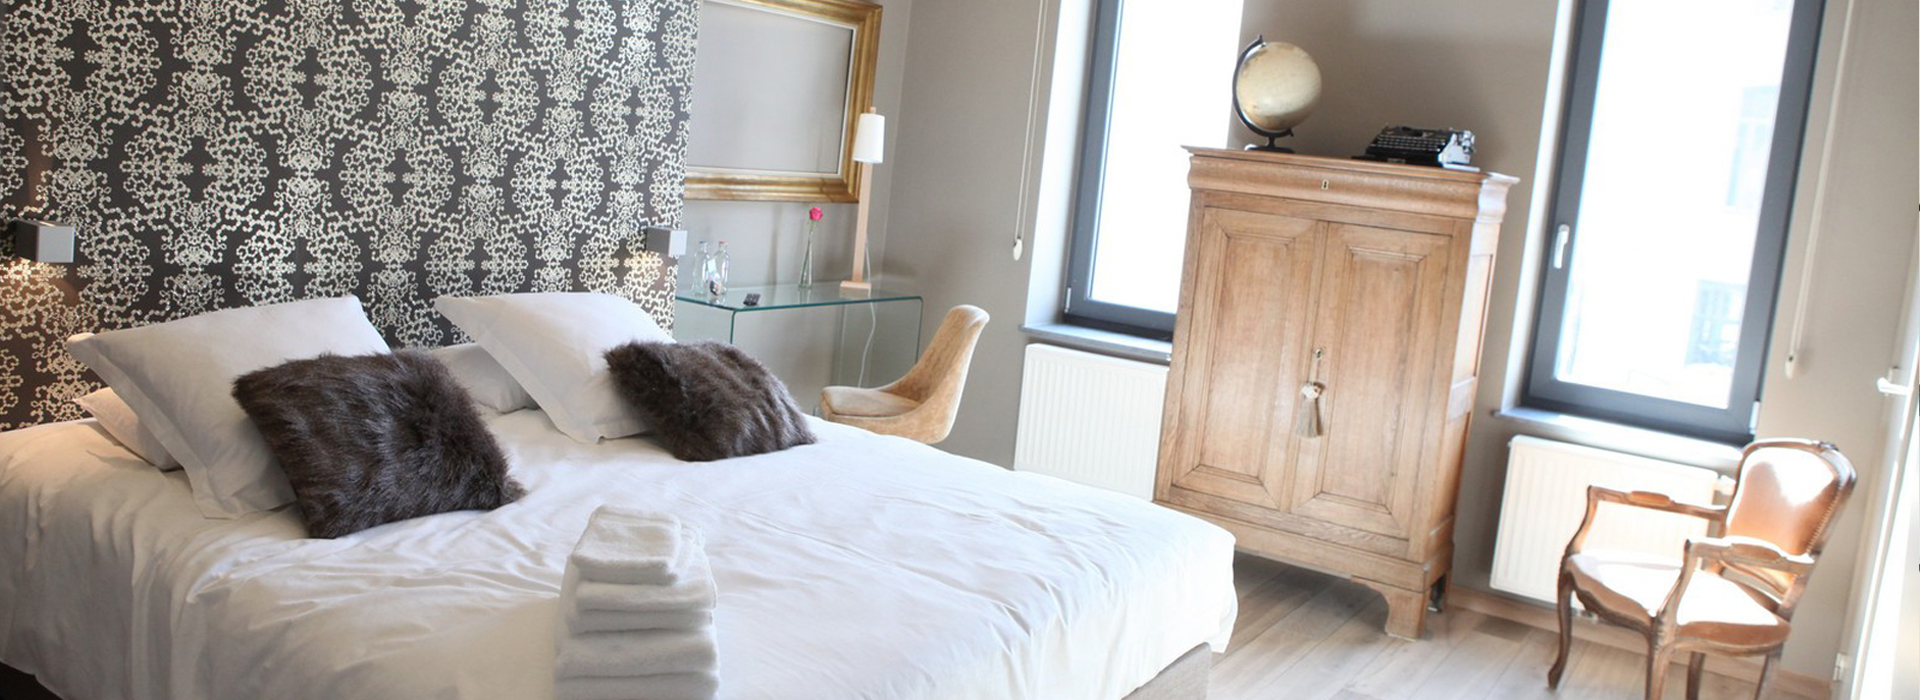 Liege Relax Home N5 Bed Breakfast N5 Liège